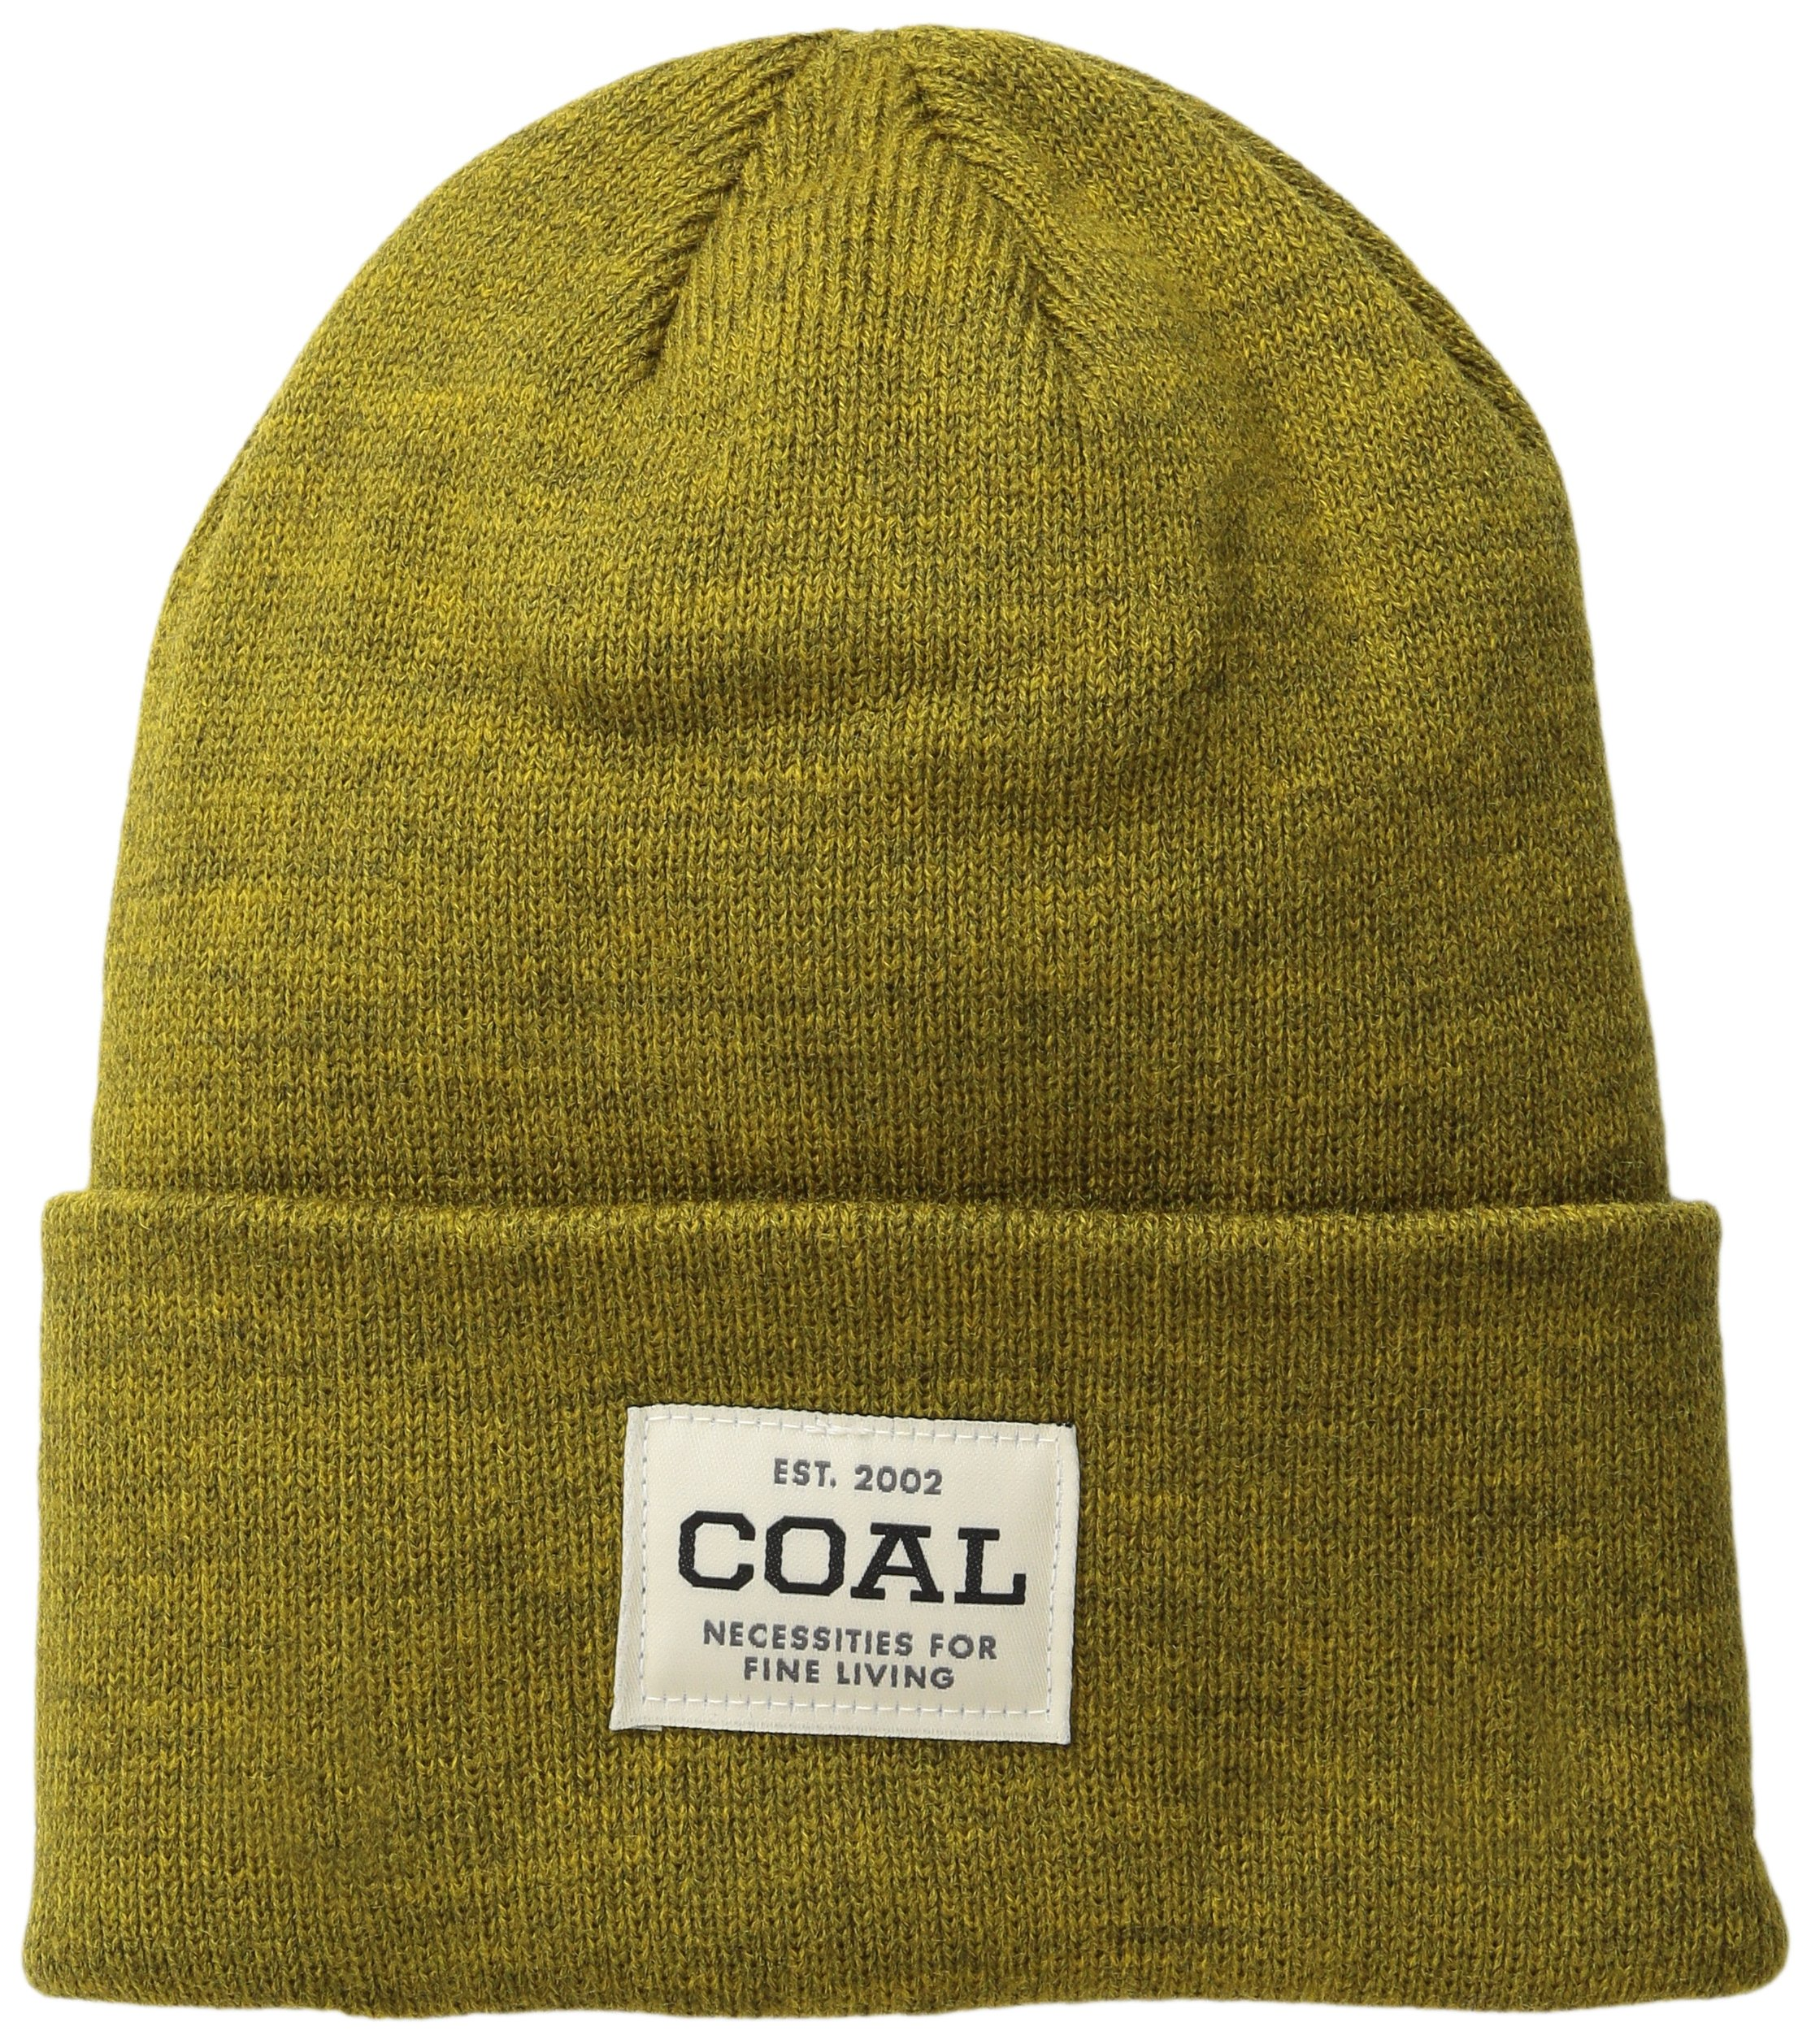 Coal Men's The Uniform Fine Knit Workwear Cuffed Beanie Hat, Golden Heather, One Size